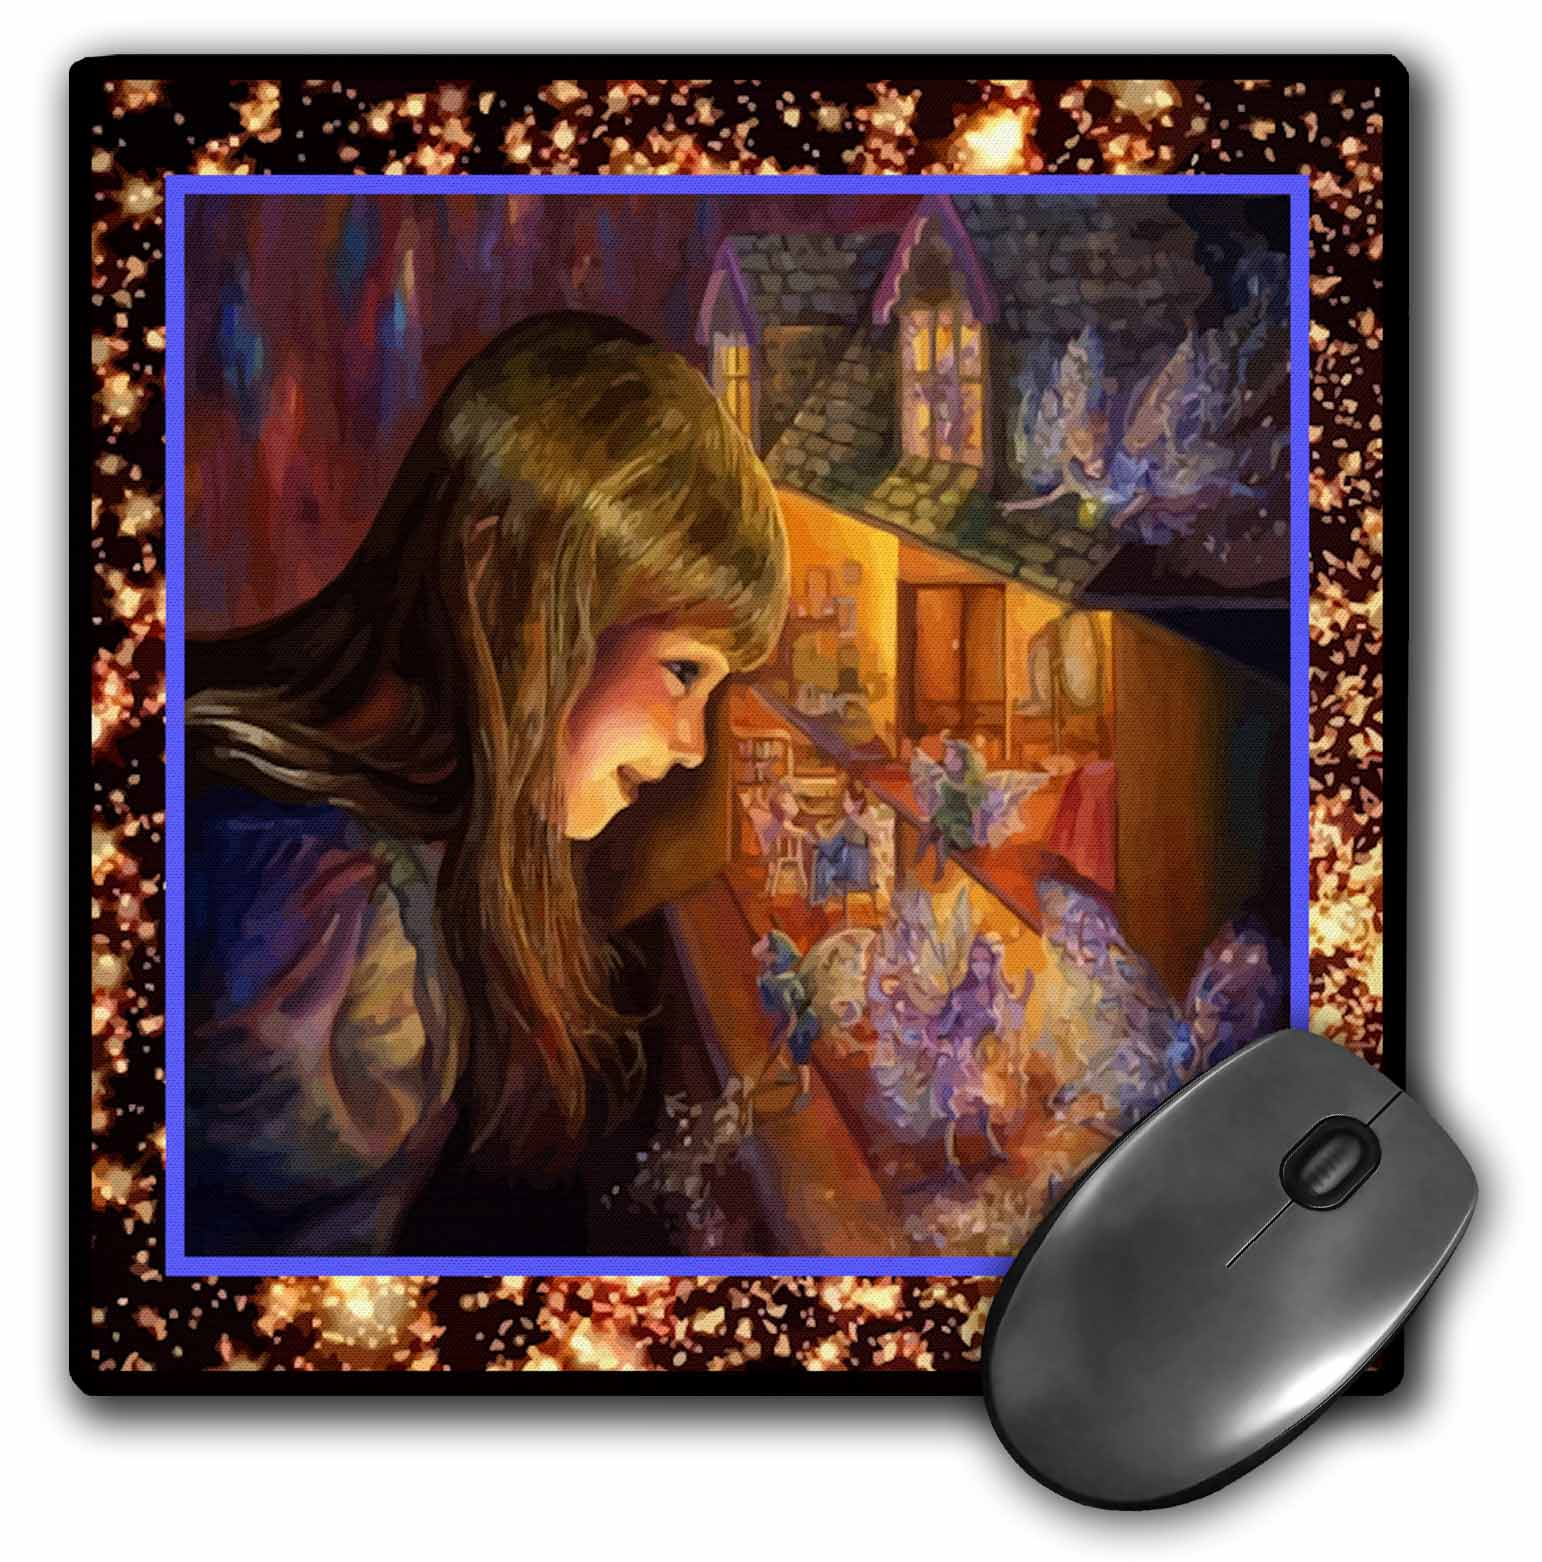 3dRose Dollhouse Fairies, Mouse Pad, 8 by 8 inches